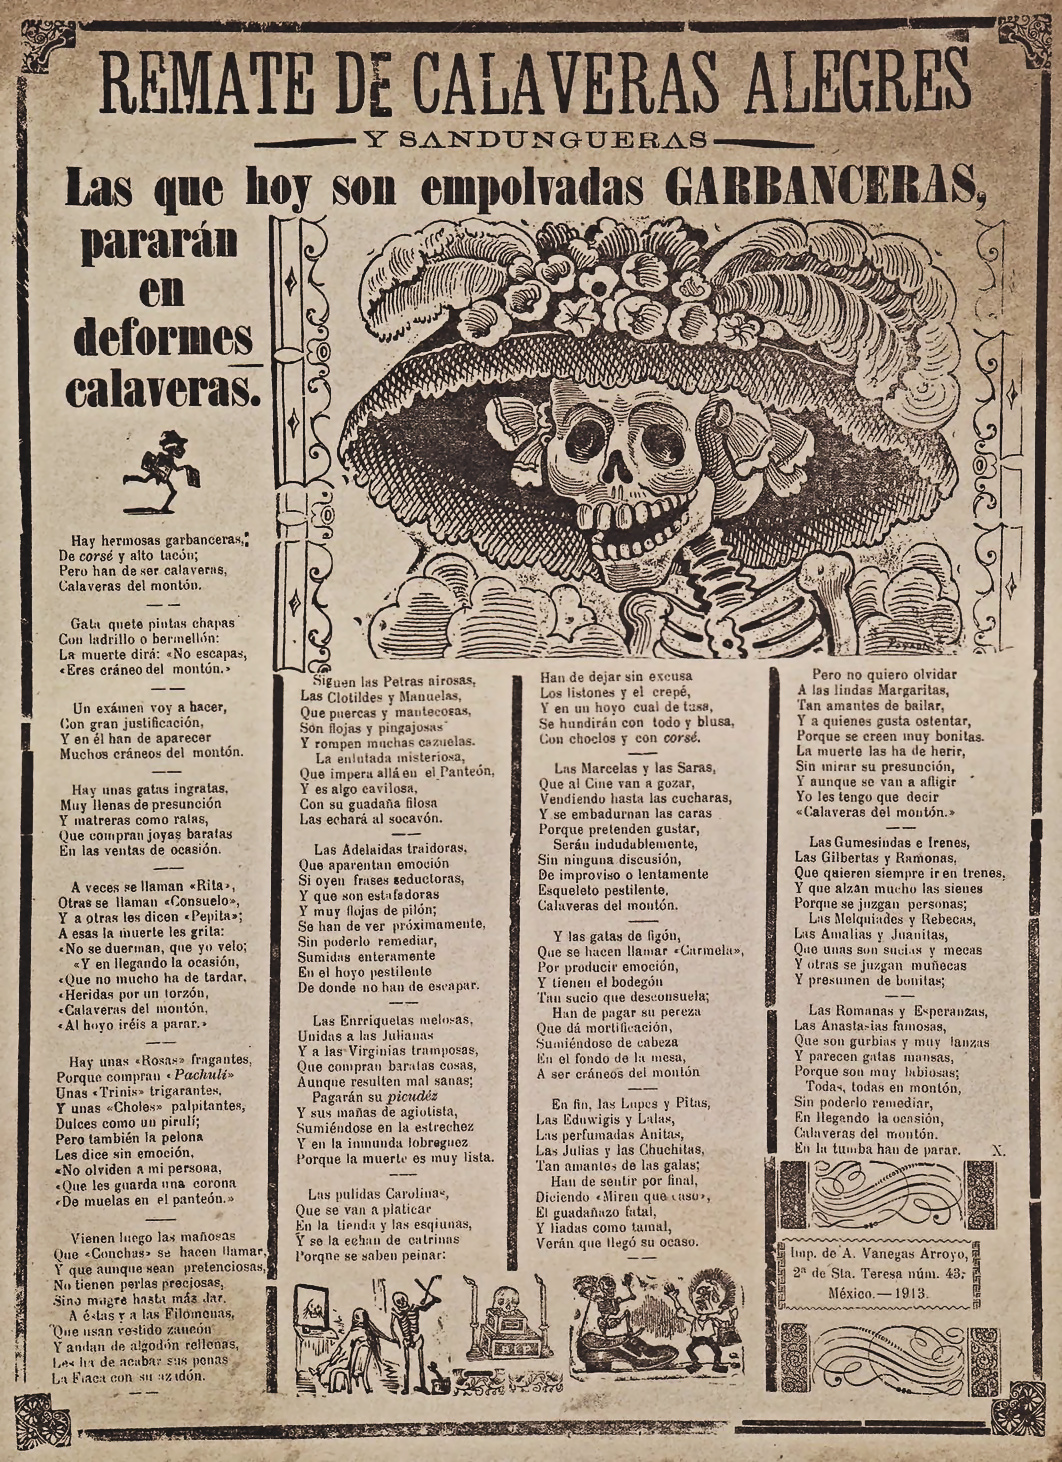 Spanish language broadside from the early 1900's. Has image of a skeleton with a broad rimmed hat.